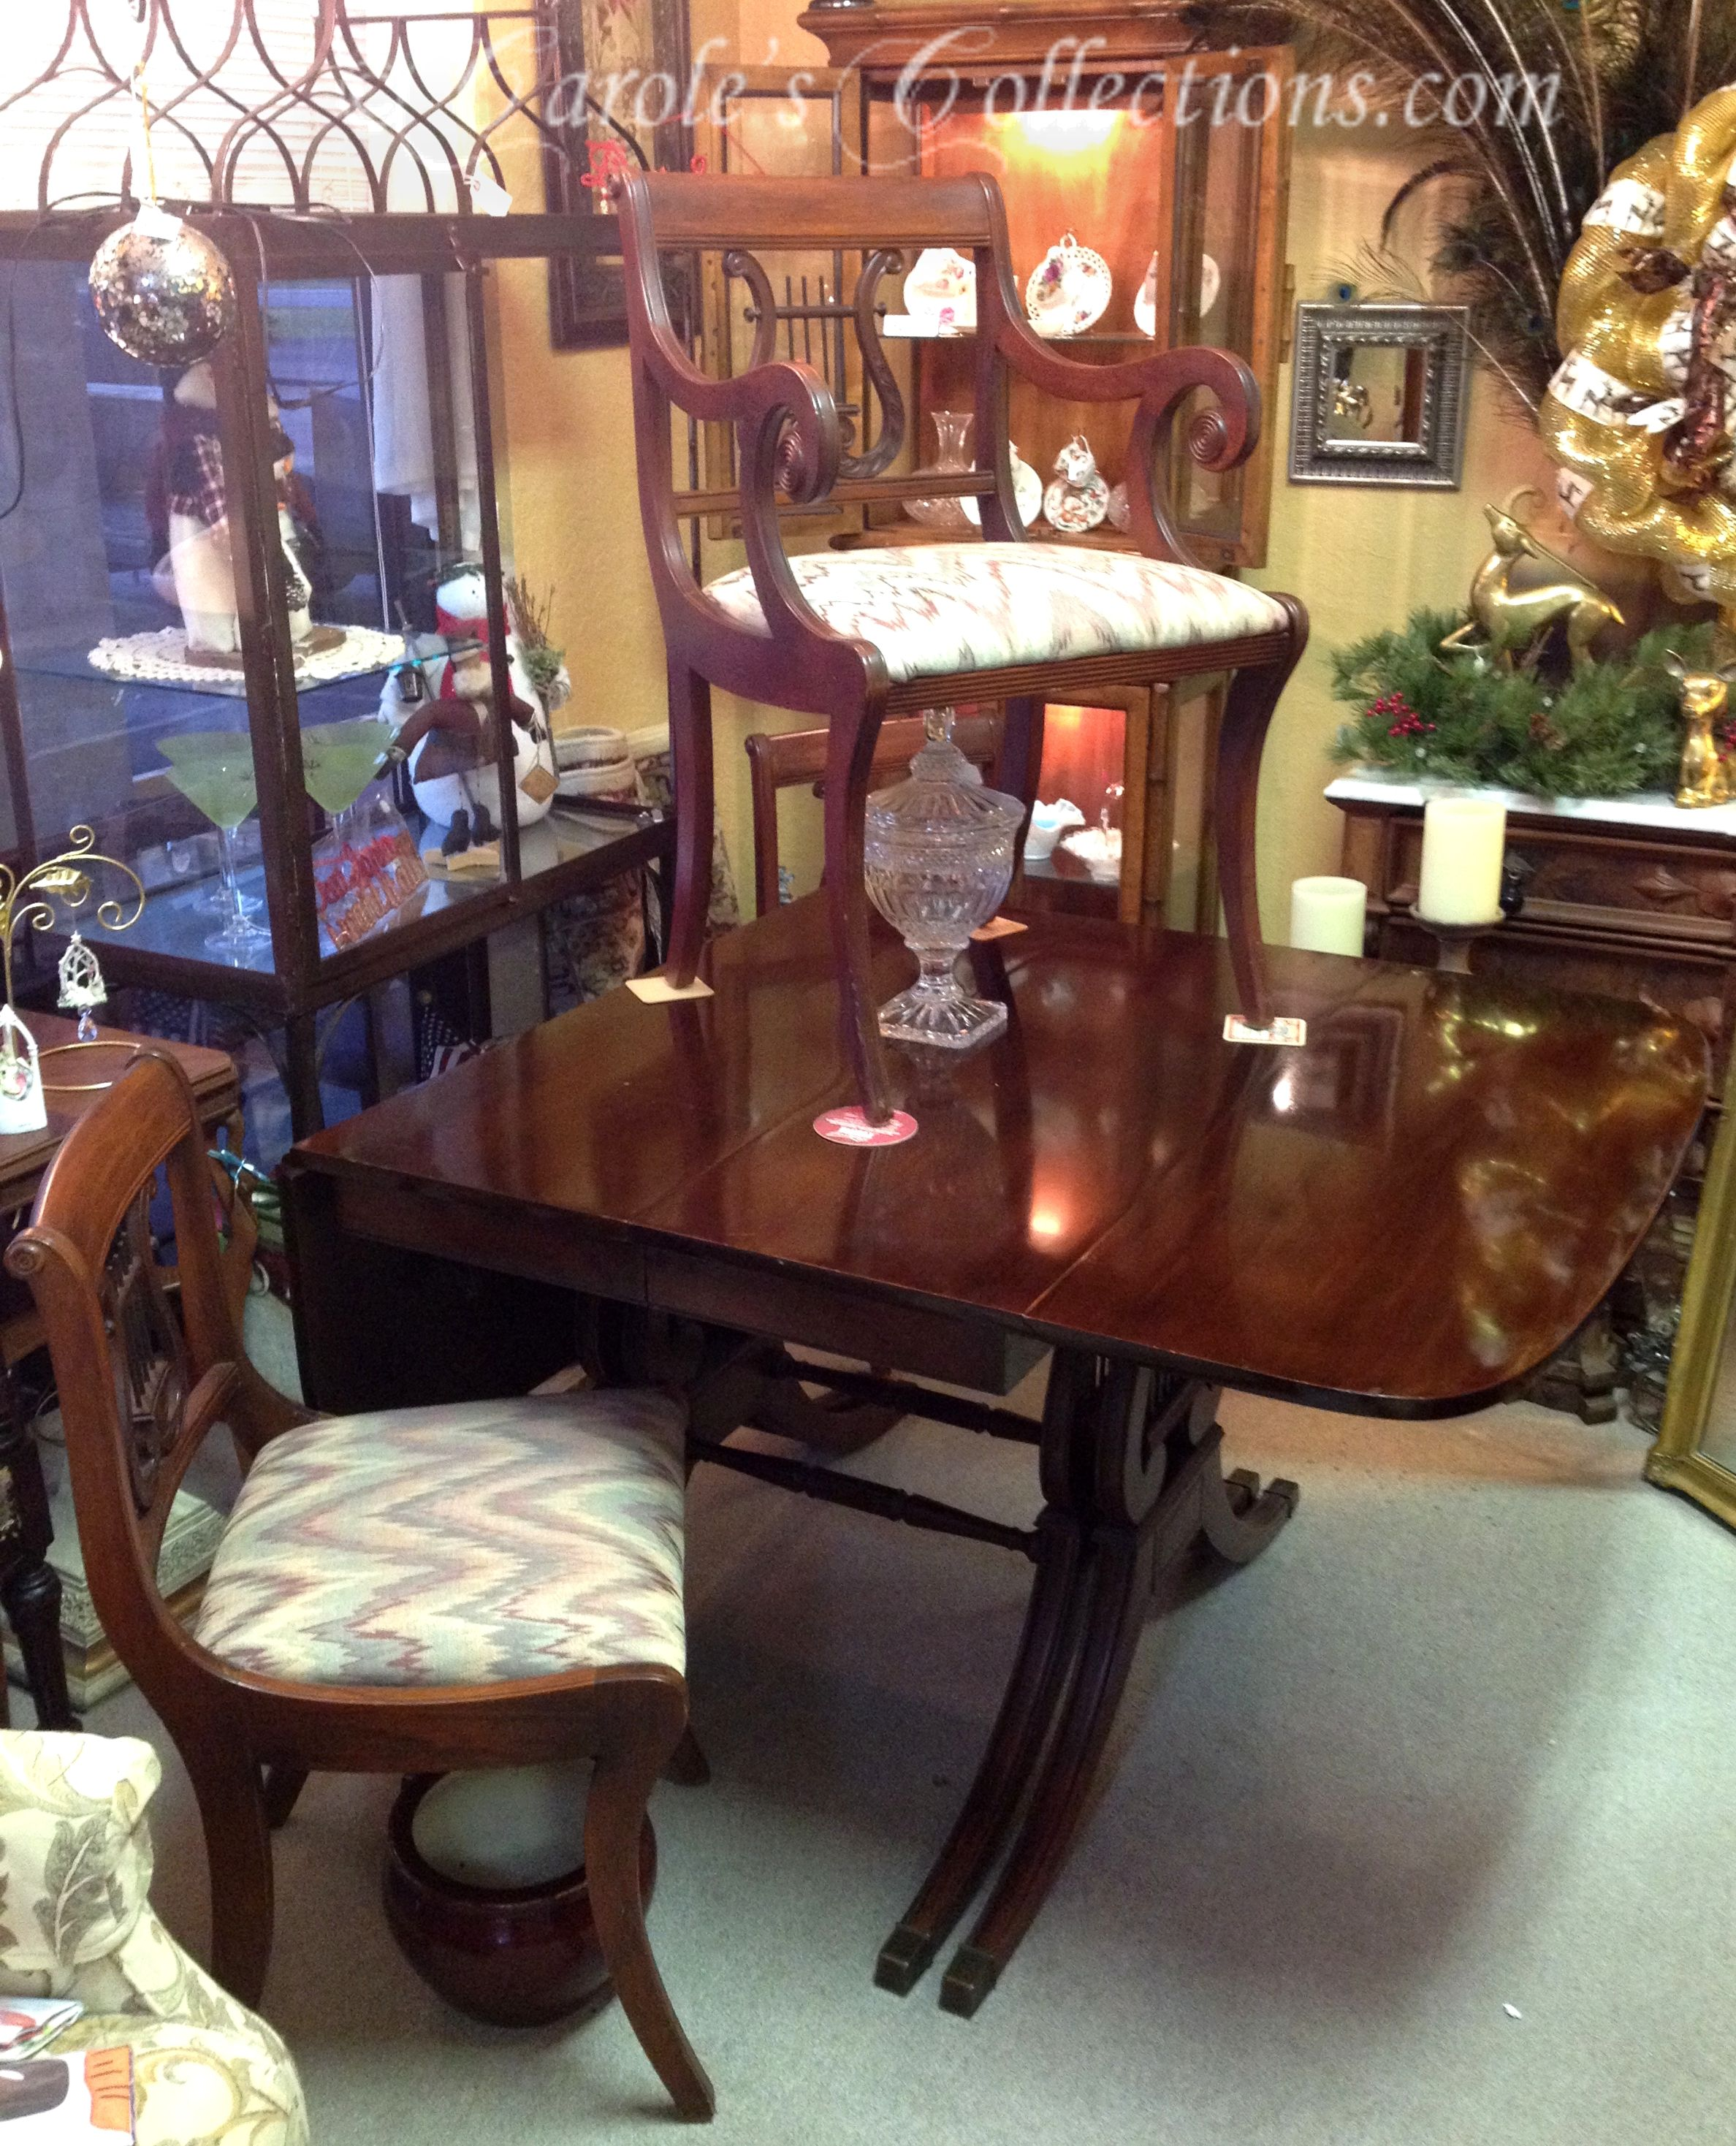 Dining Room Table Pads Enchanting Duncan Phyfe Mahogany Drop Leaf Dining Set ~ 6 Chairs 3 Leaves Inspiration Design